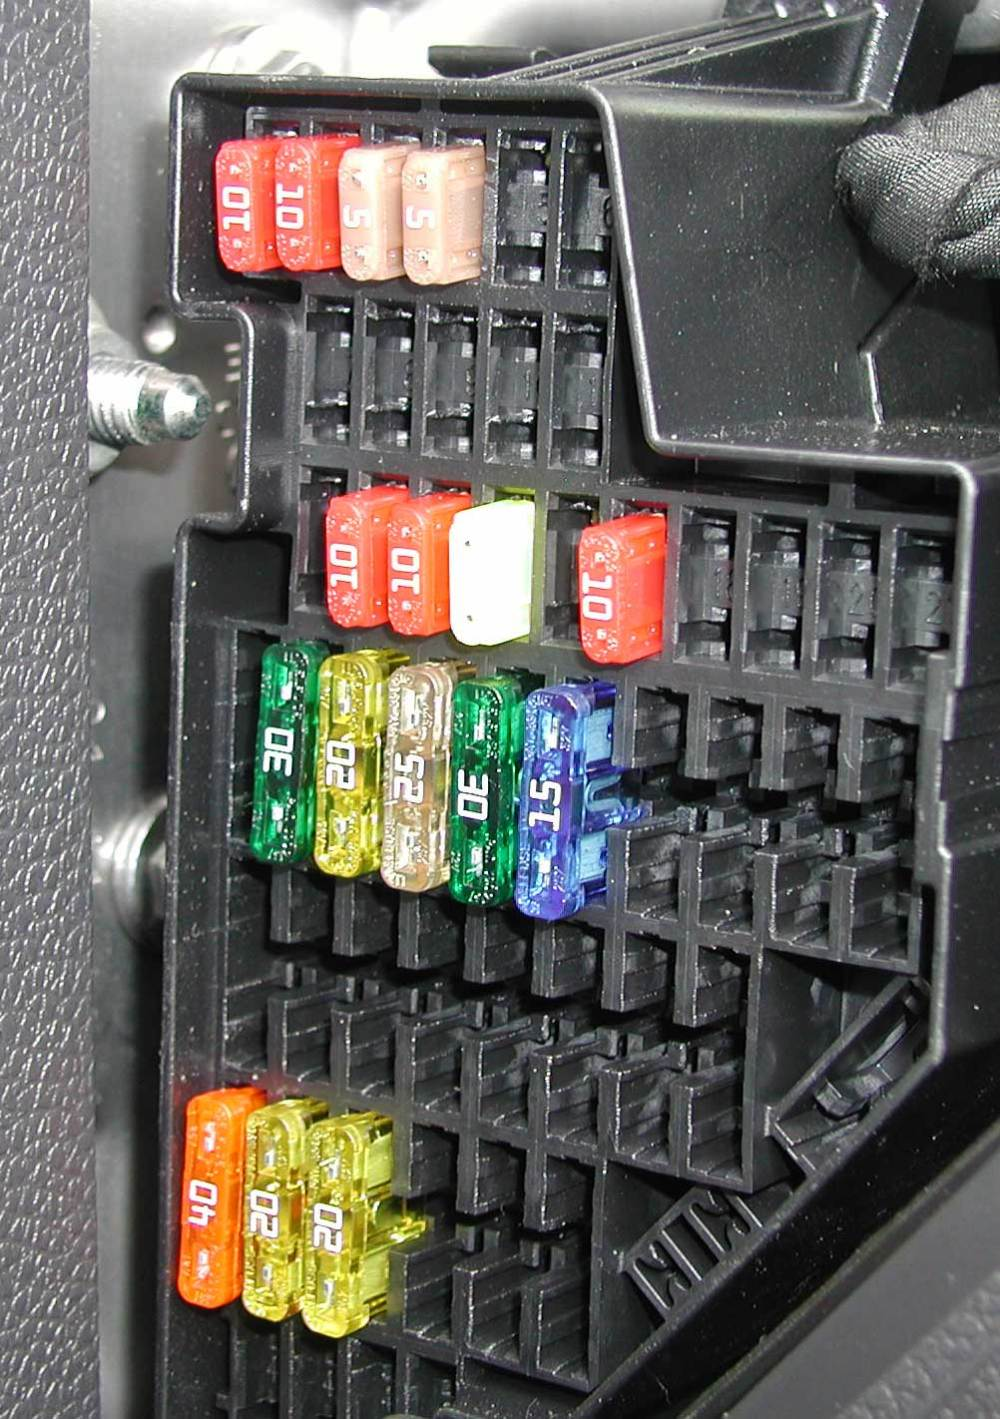 medium resolution of 2011 golf tdi fuse box picture please tdiclub forums vw golf tdi fuse box vw tdi fuse box